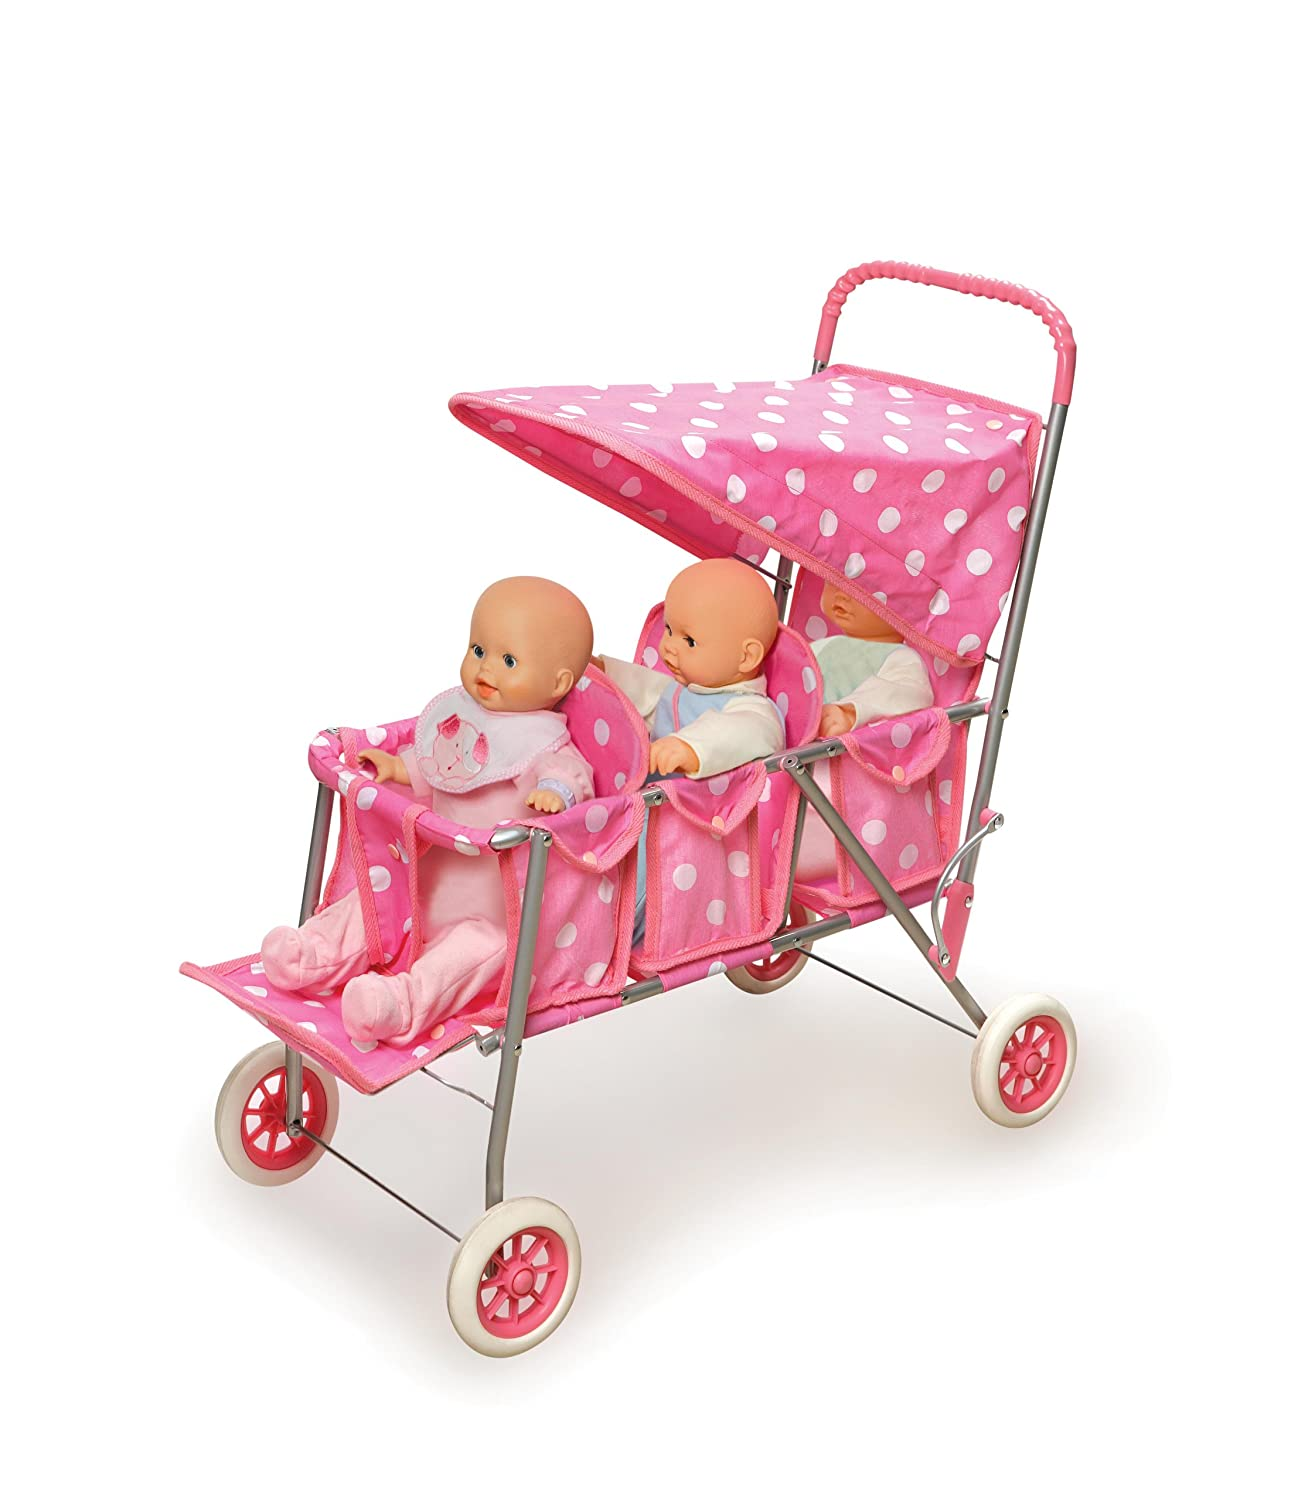 Amazon Badger Basket Triple Doll Stroller Pink Polka Dots fits American Girl dolls Toys & Games